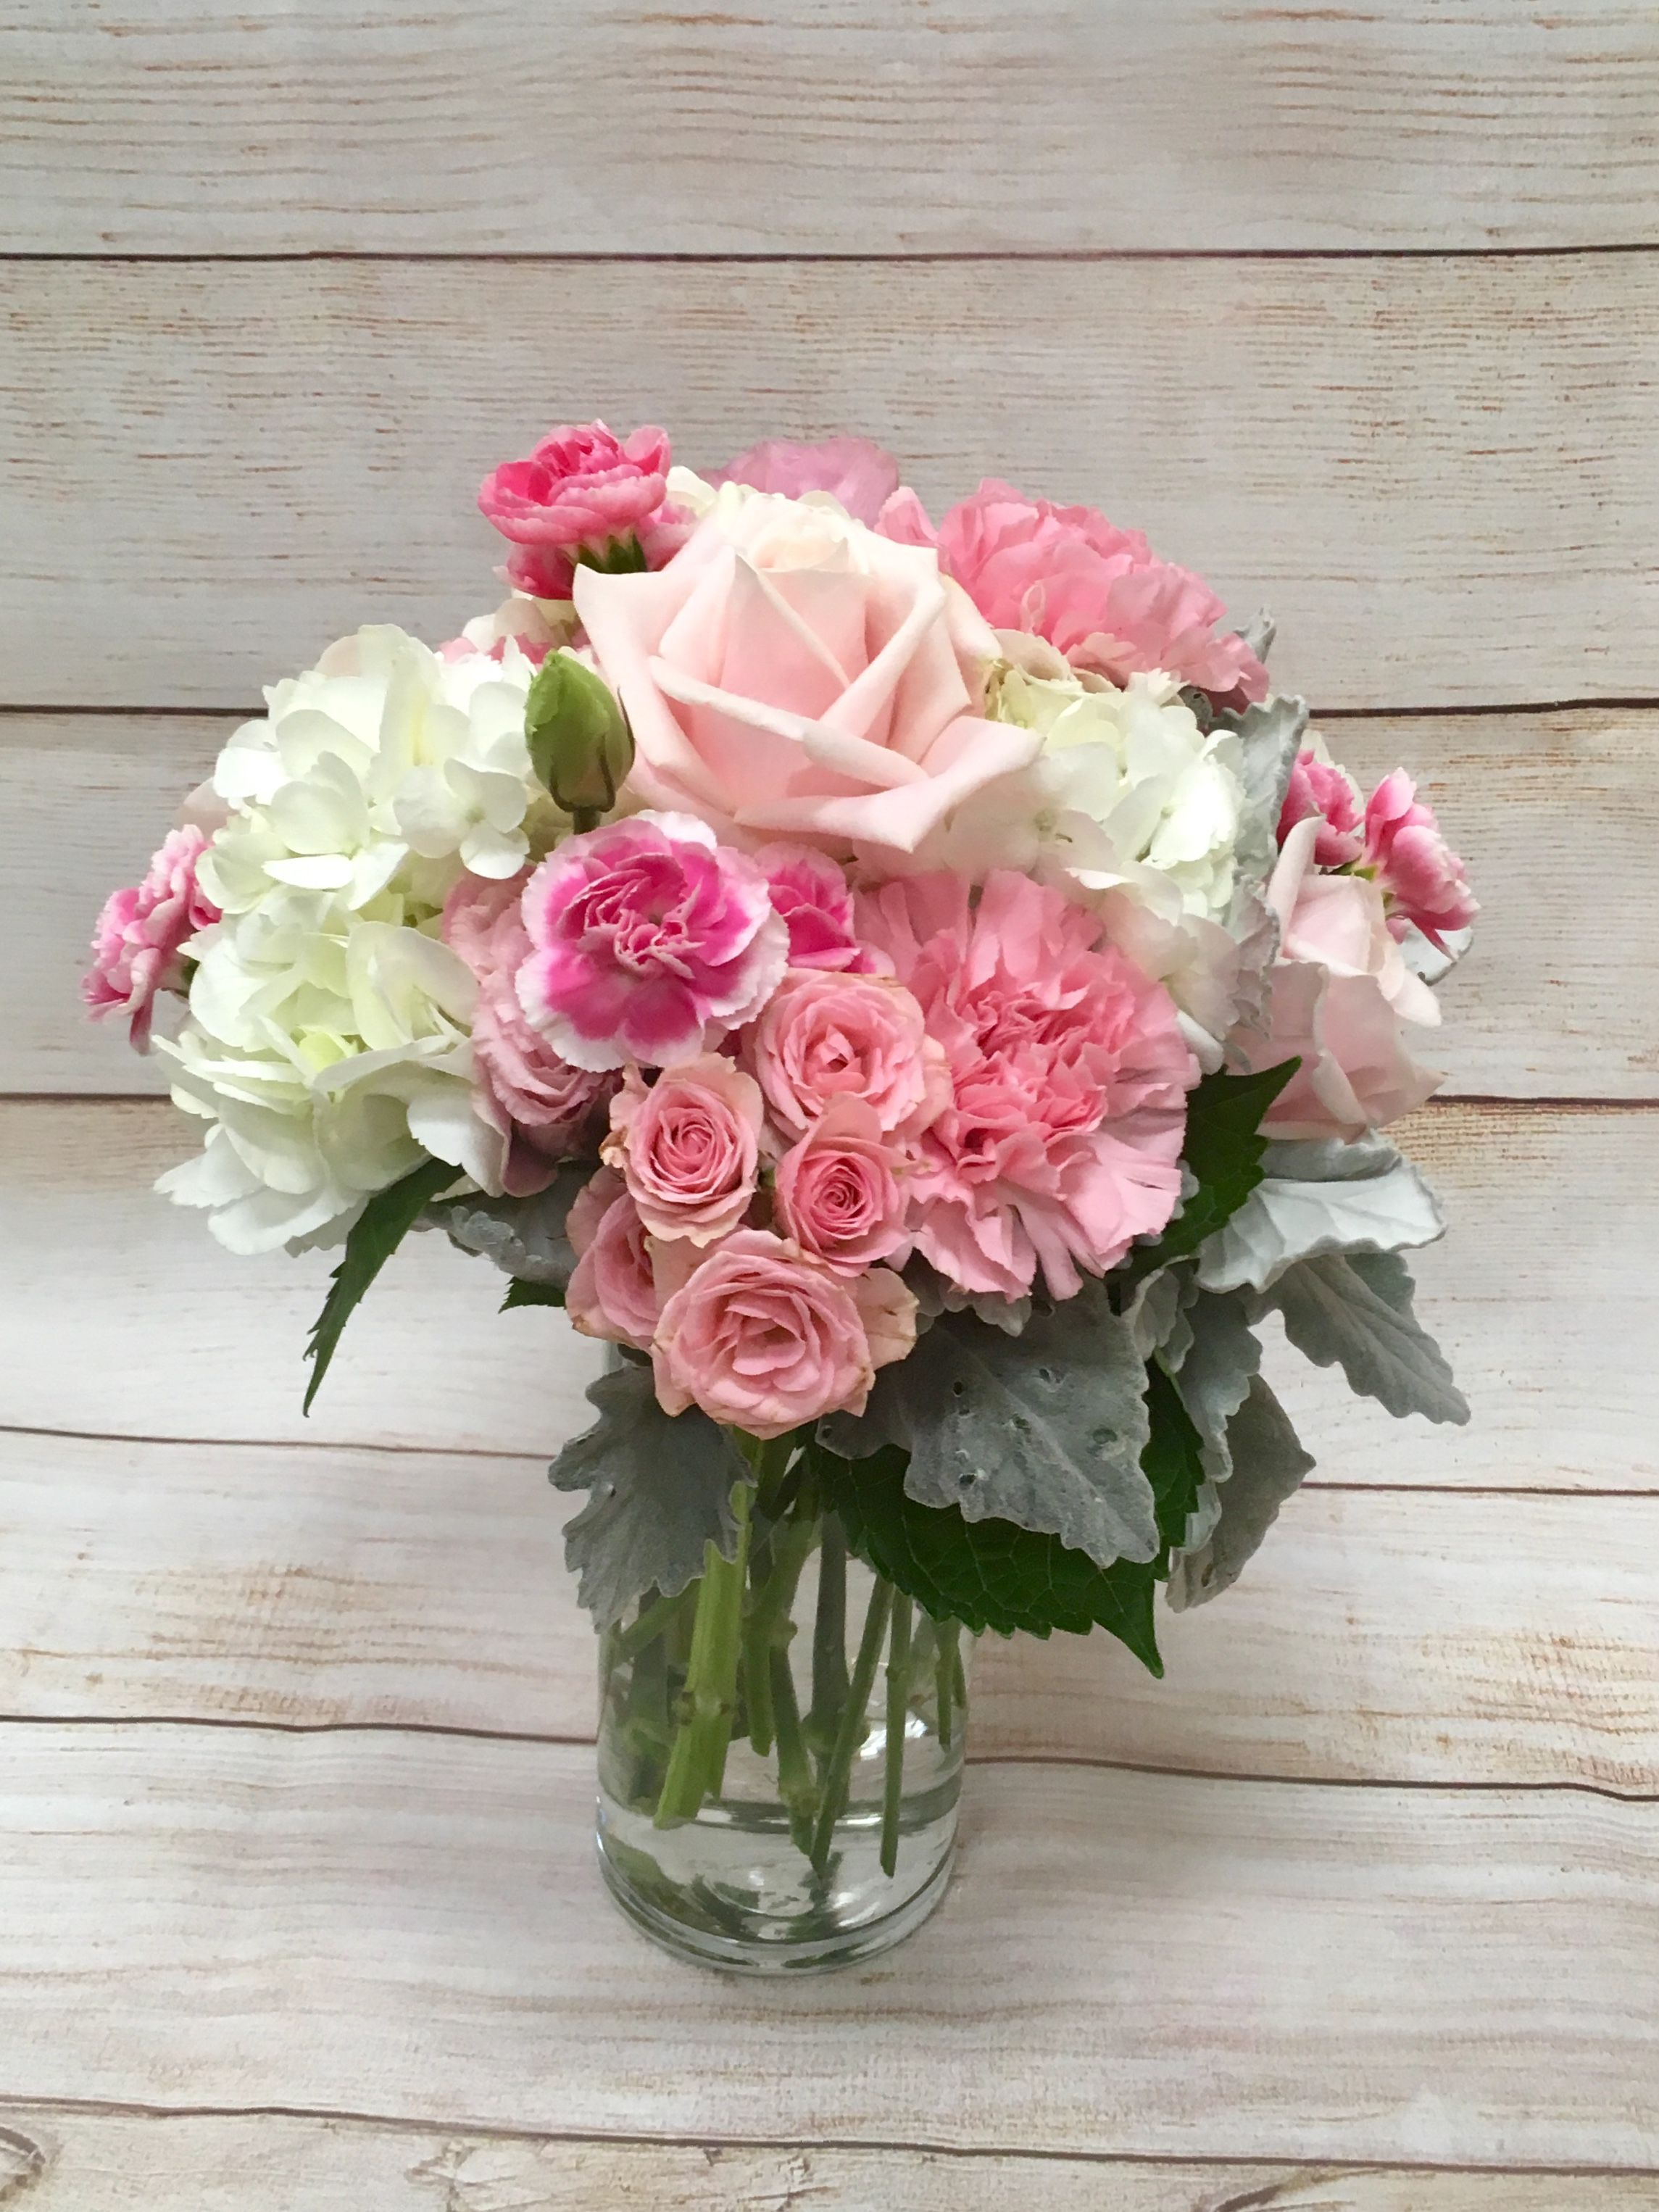 Pretty N Pink Centerpiece Made Of Hydrangea Roses And Mini Carnations Pink Flower Arrangements Flower Arranging Class Mini Carnations